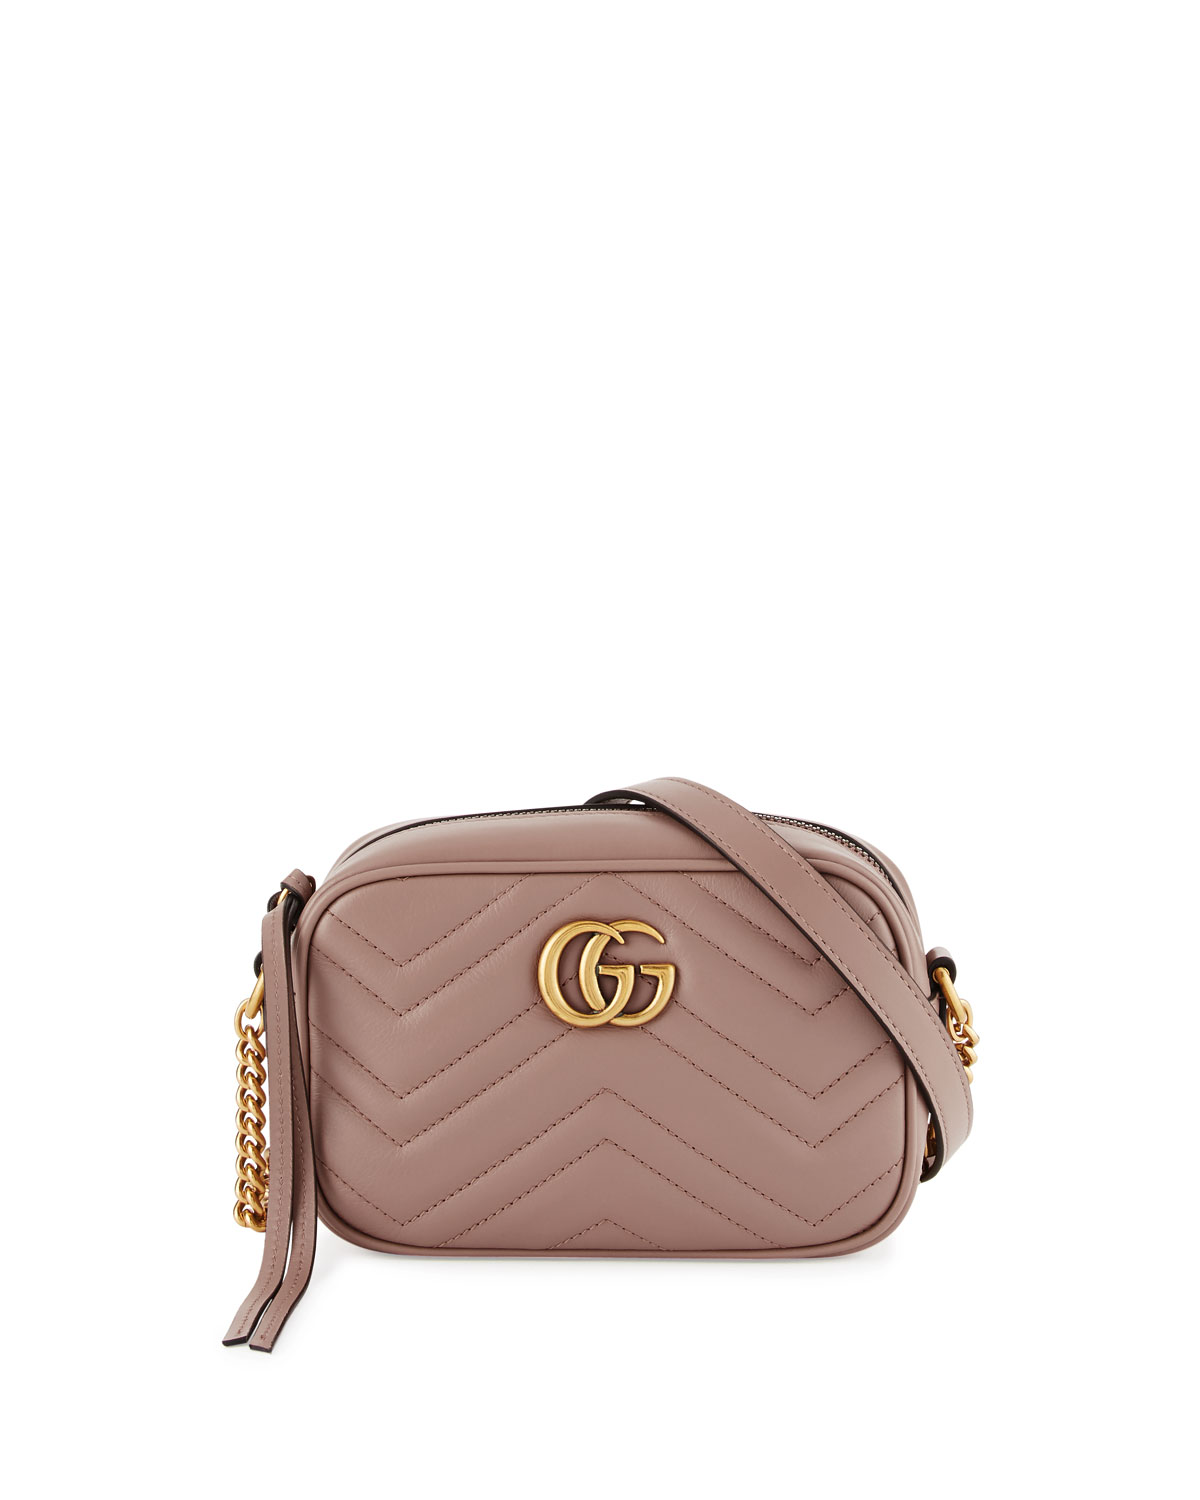 09e9229948d Gucci GG Marmont Mini Matelasse Camera Bag